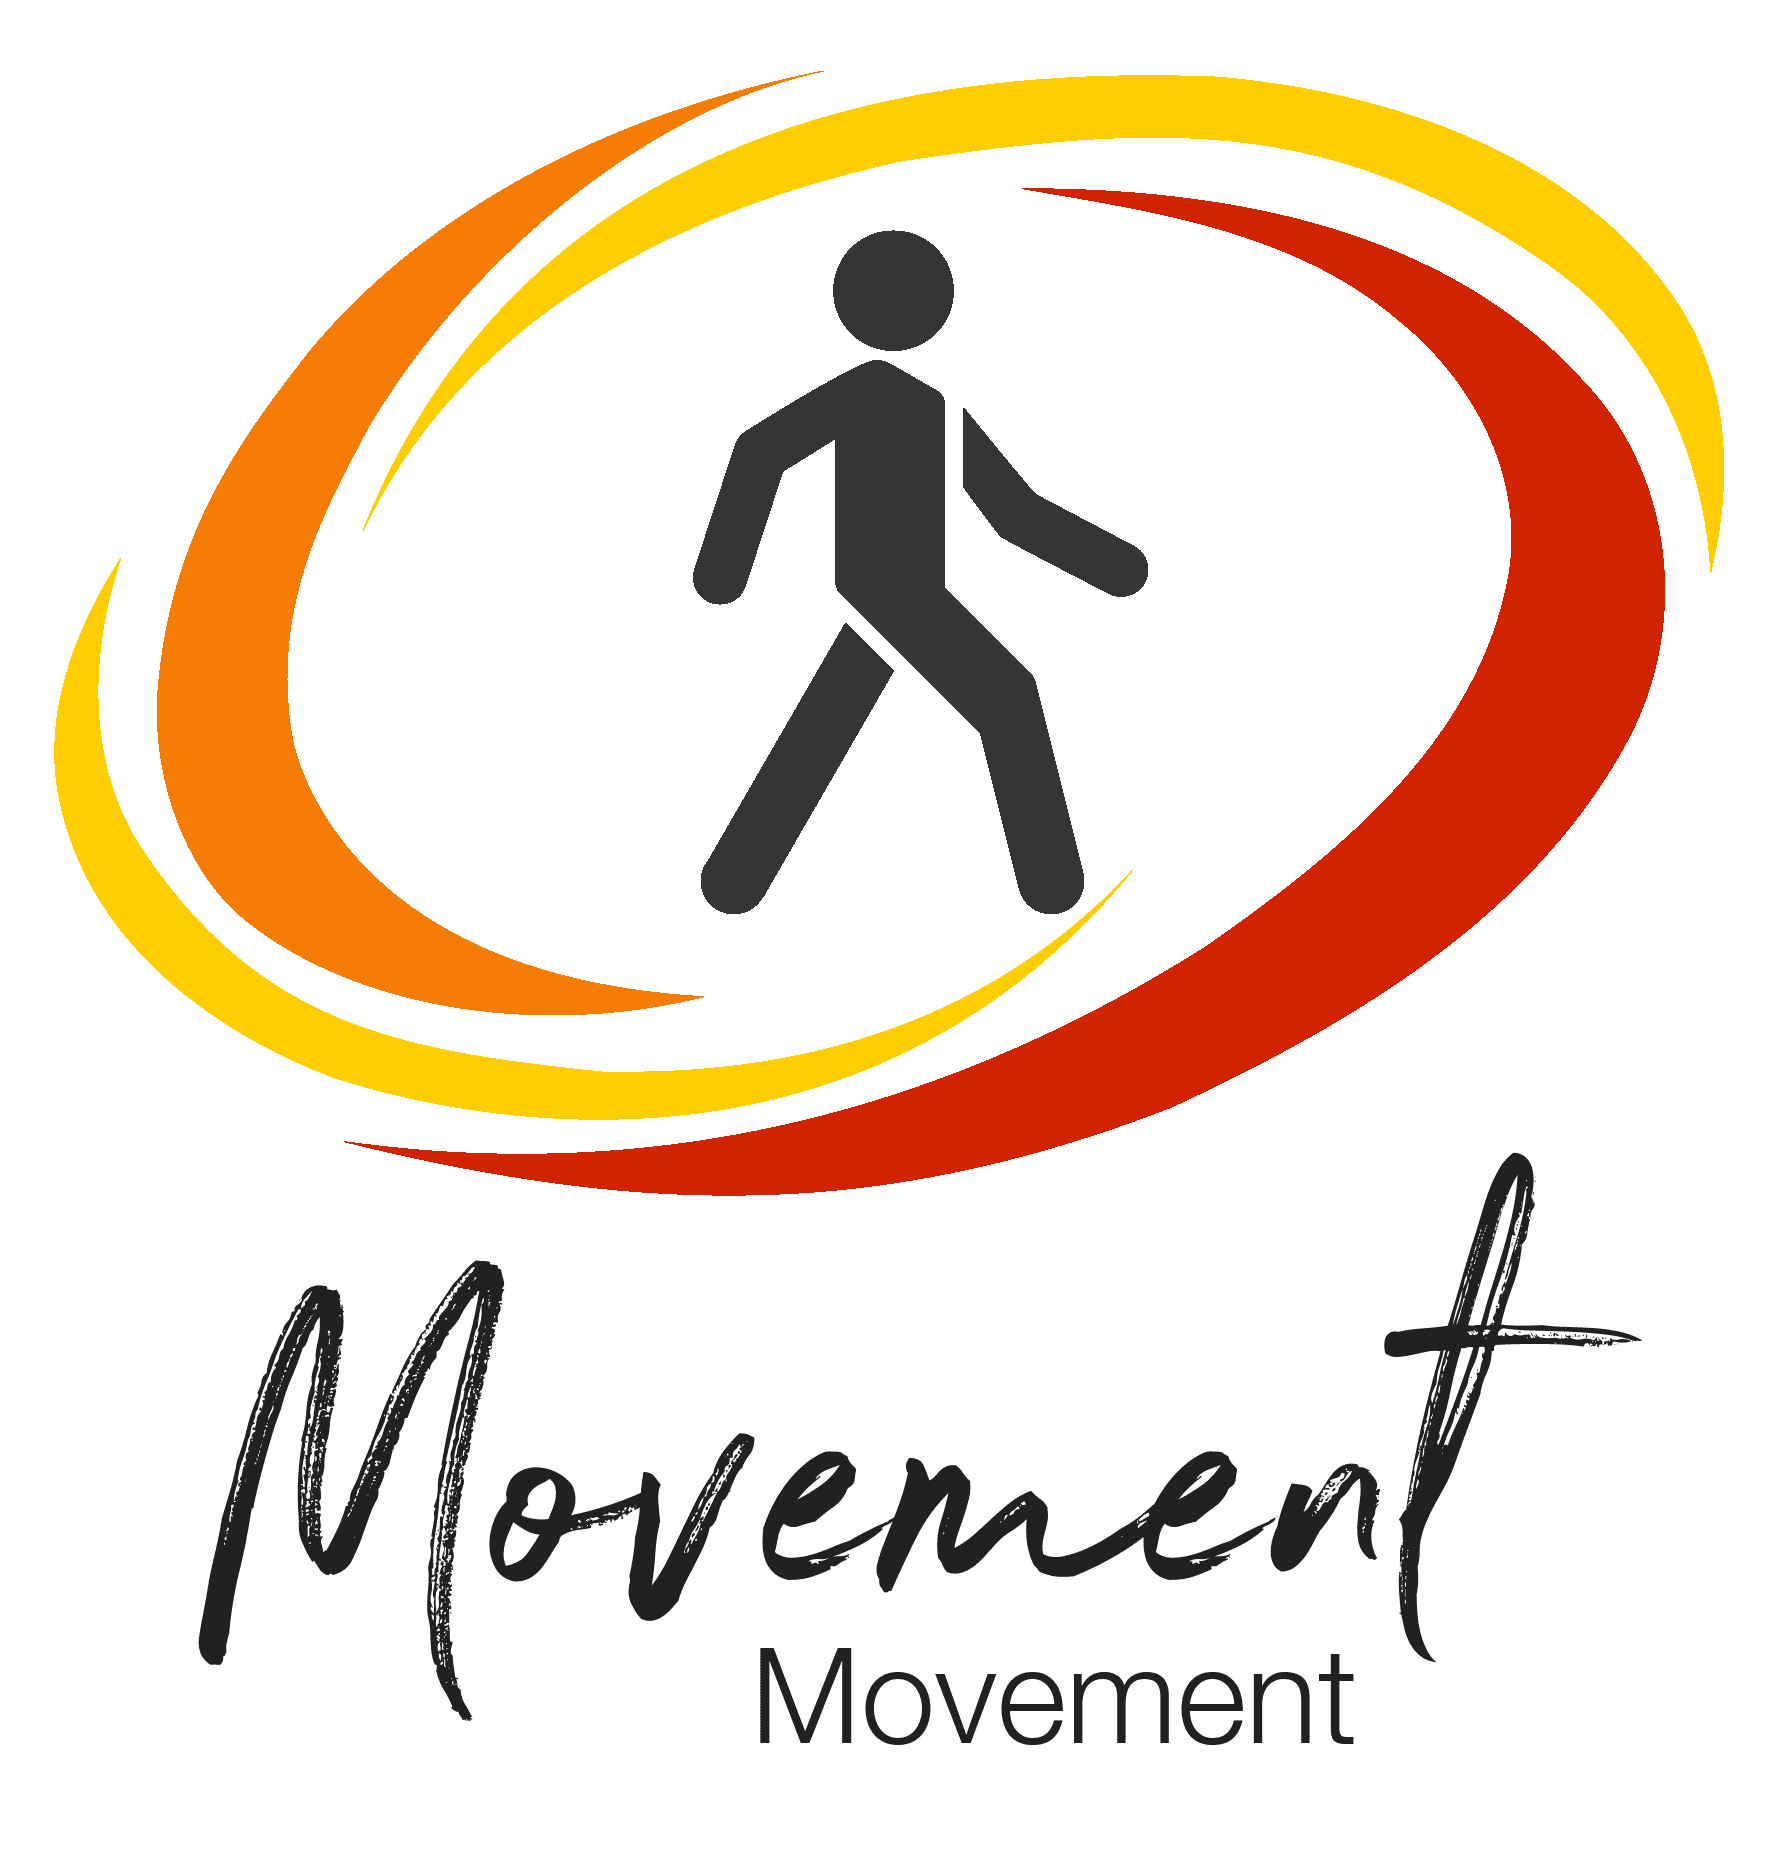 the movement movement